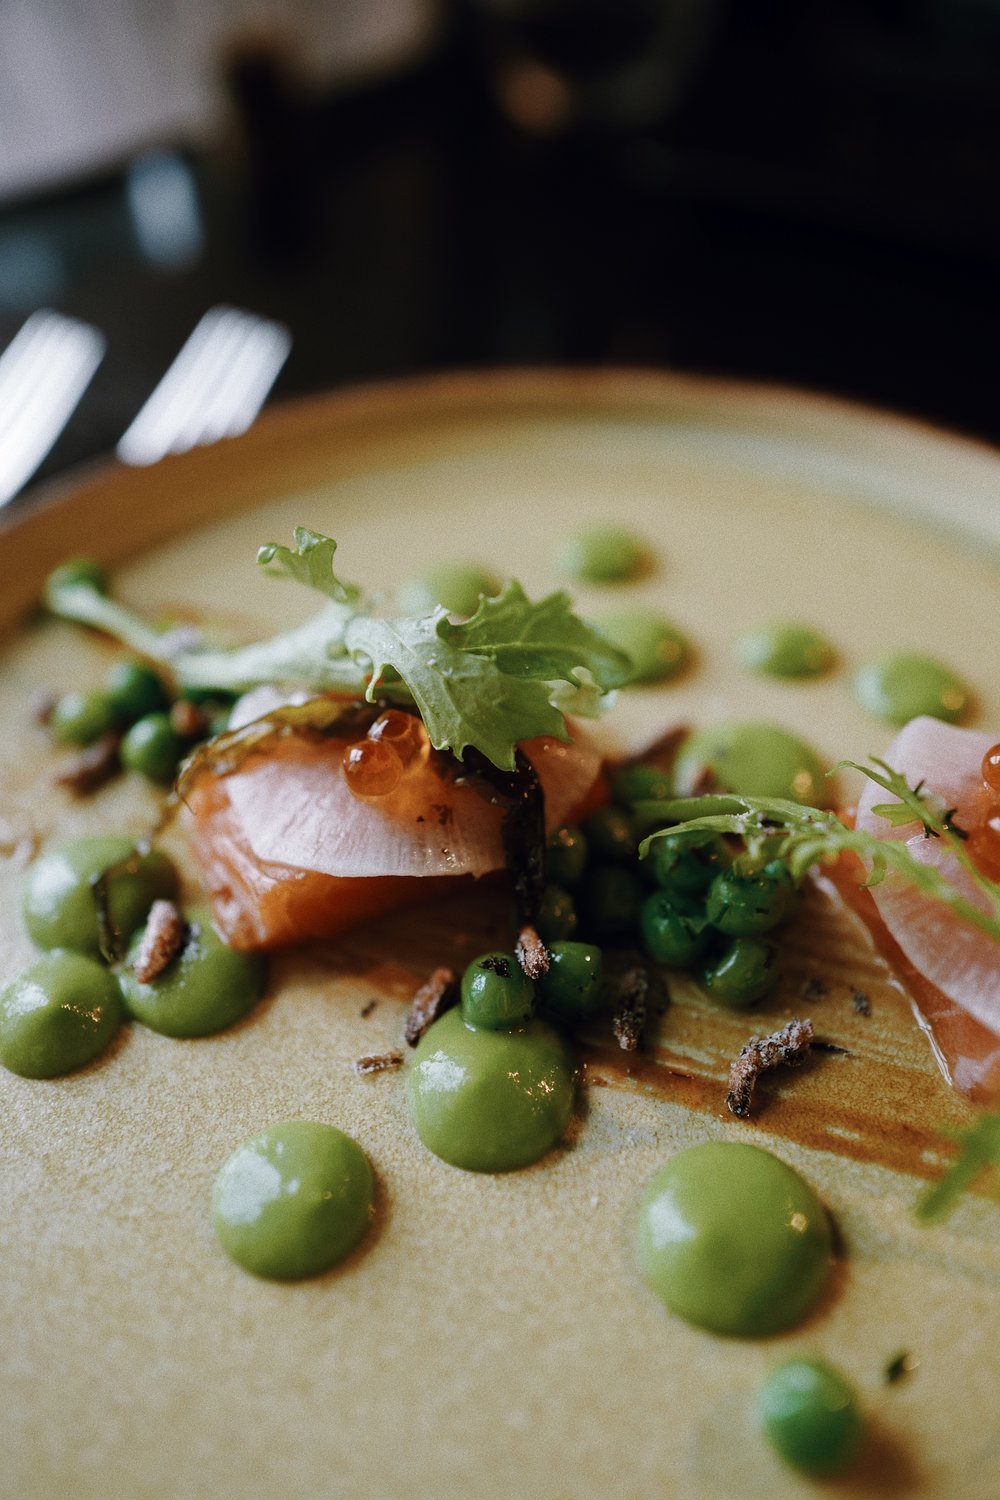 Slow cooked wester ross salmon. Wasabi and pea puree - pickled sea lettuce - miso caramel.